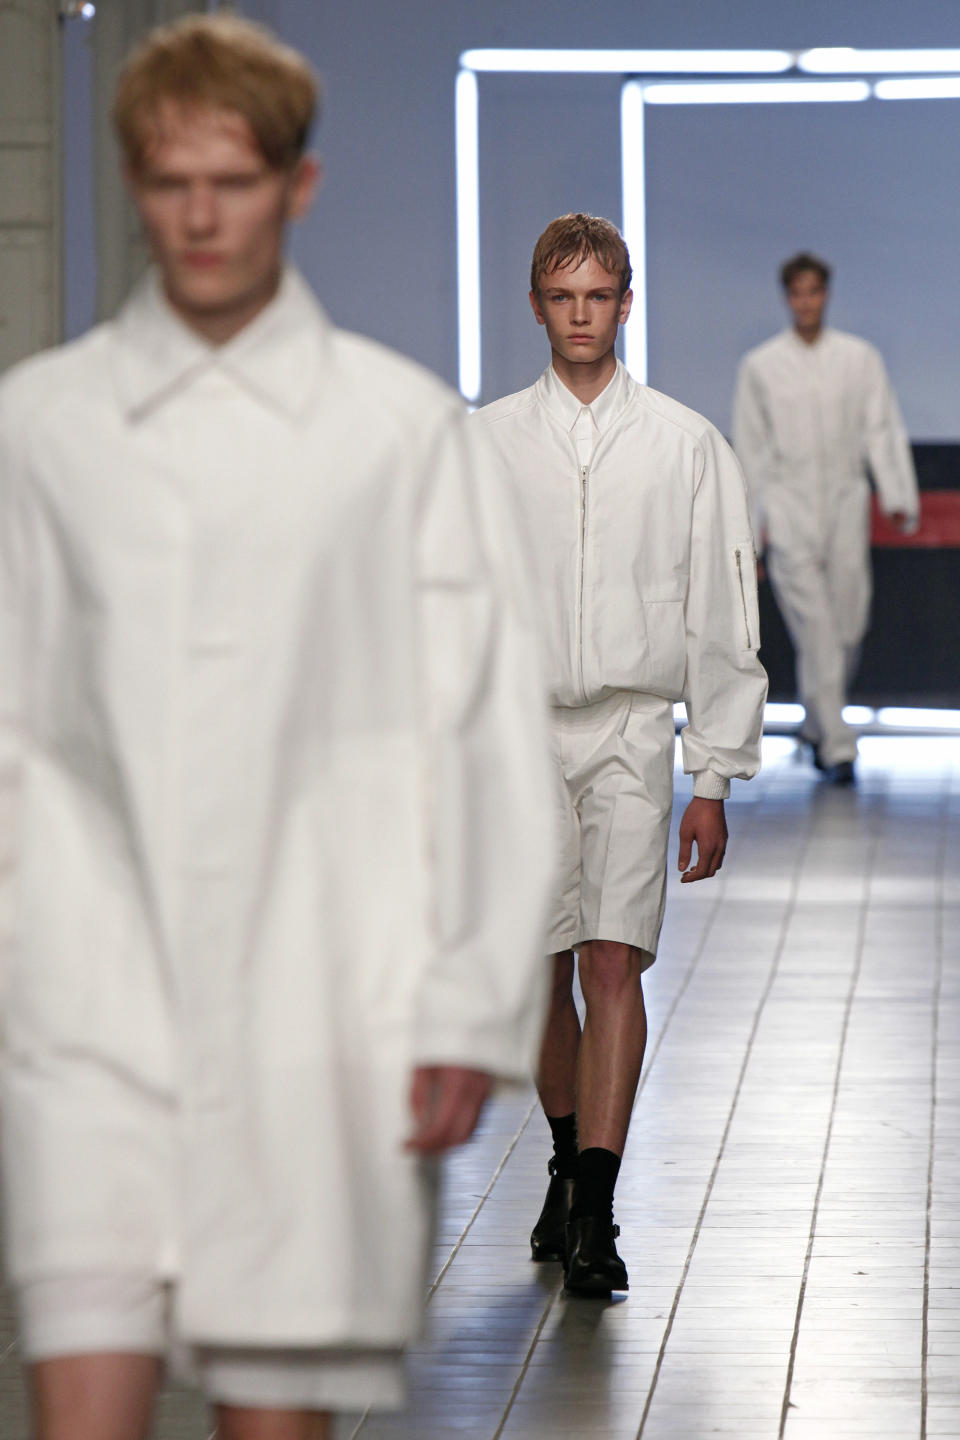 Models present creations by German fashion designer Damir Doma as part of his men's fashion Spring-Summer 2014 collection, presented Saturday, June 29, 2013 in Paris. (AP Photo/Thibault Camus)